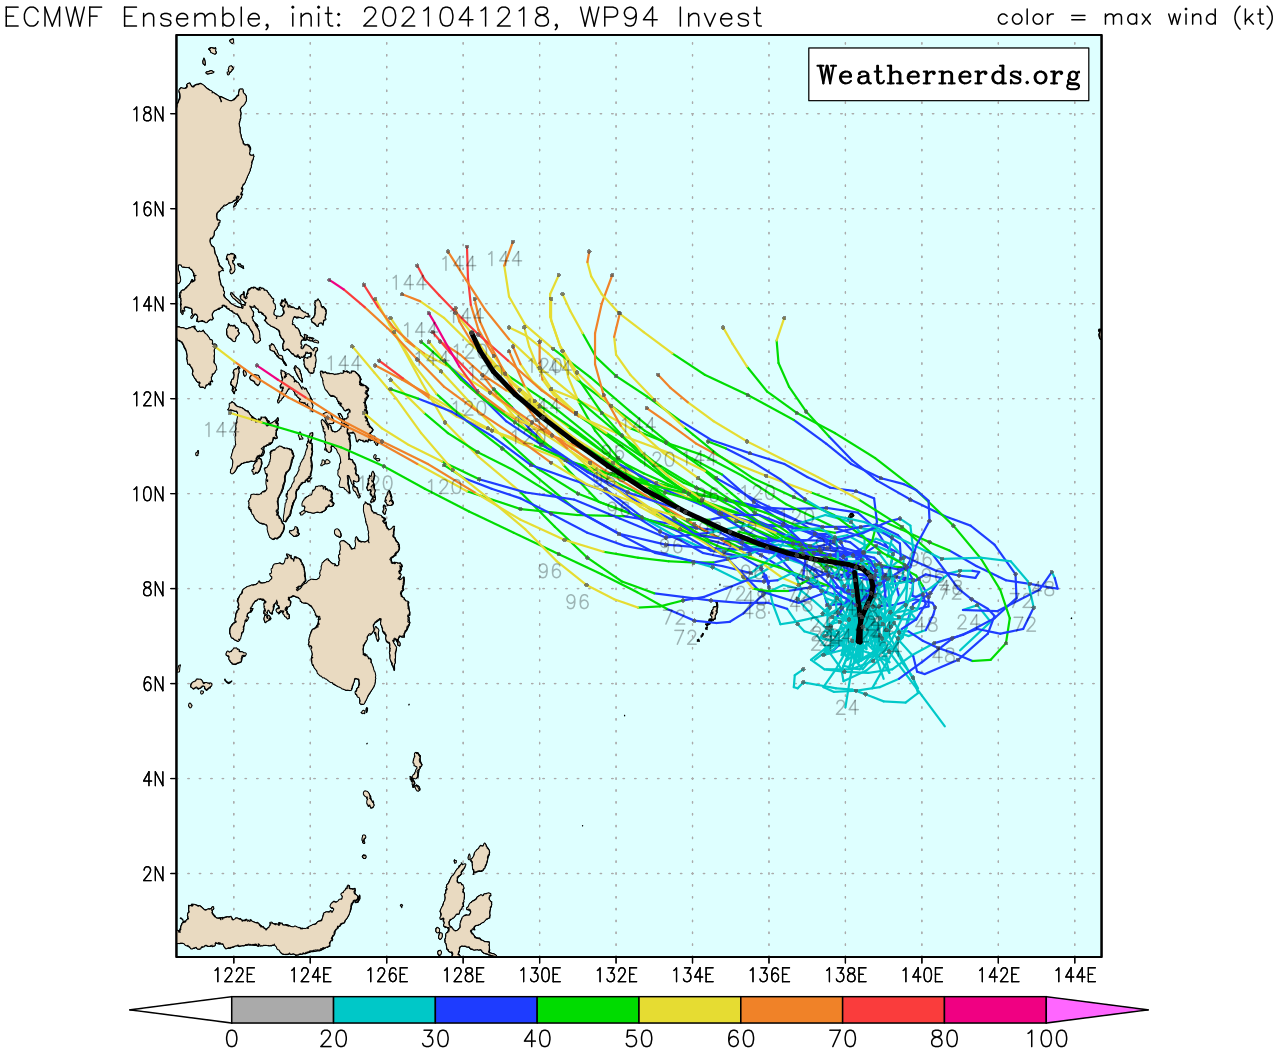 INVEST 94W. GLOBAL MODELS ARE IN AGREEMENT THAT  INVEST 94W WILL CONTINUE TO TRACK NORTHWESTWARD, CONSOLIDATE AND  STRENGTHEN FOR THE NEXT 48-96 HOURS. MODEL ENSEMBLE: ECMWF